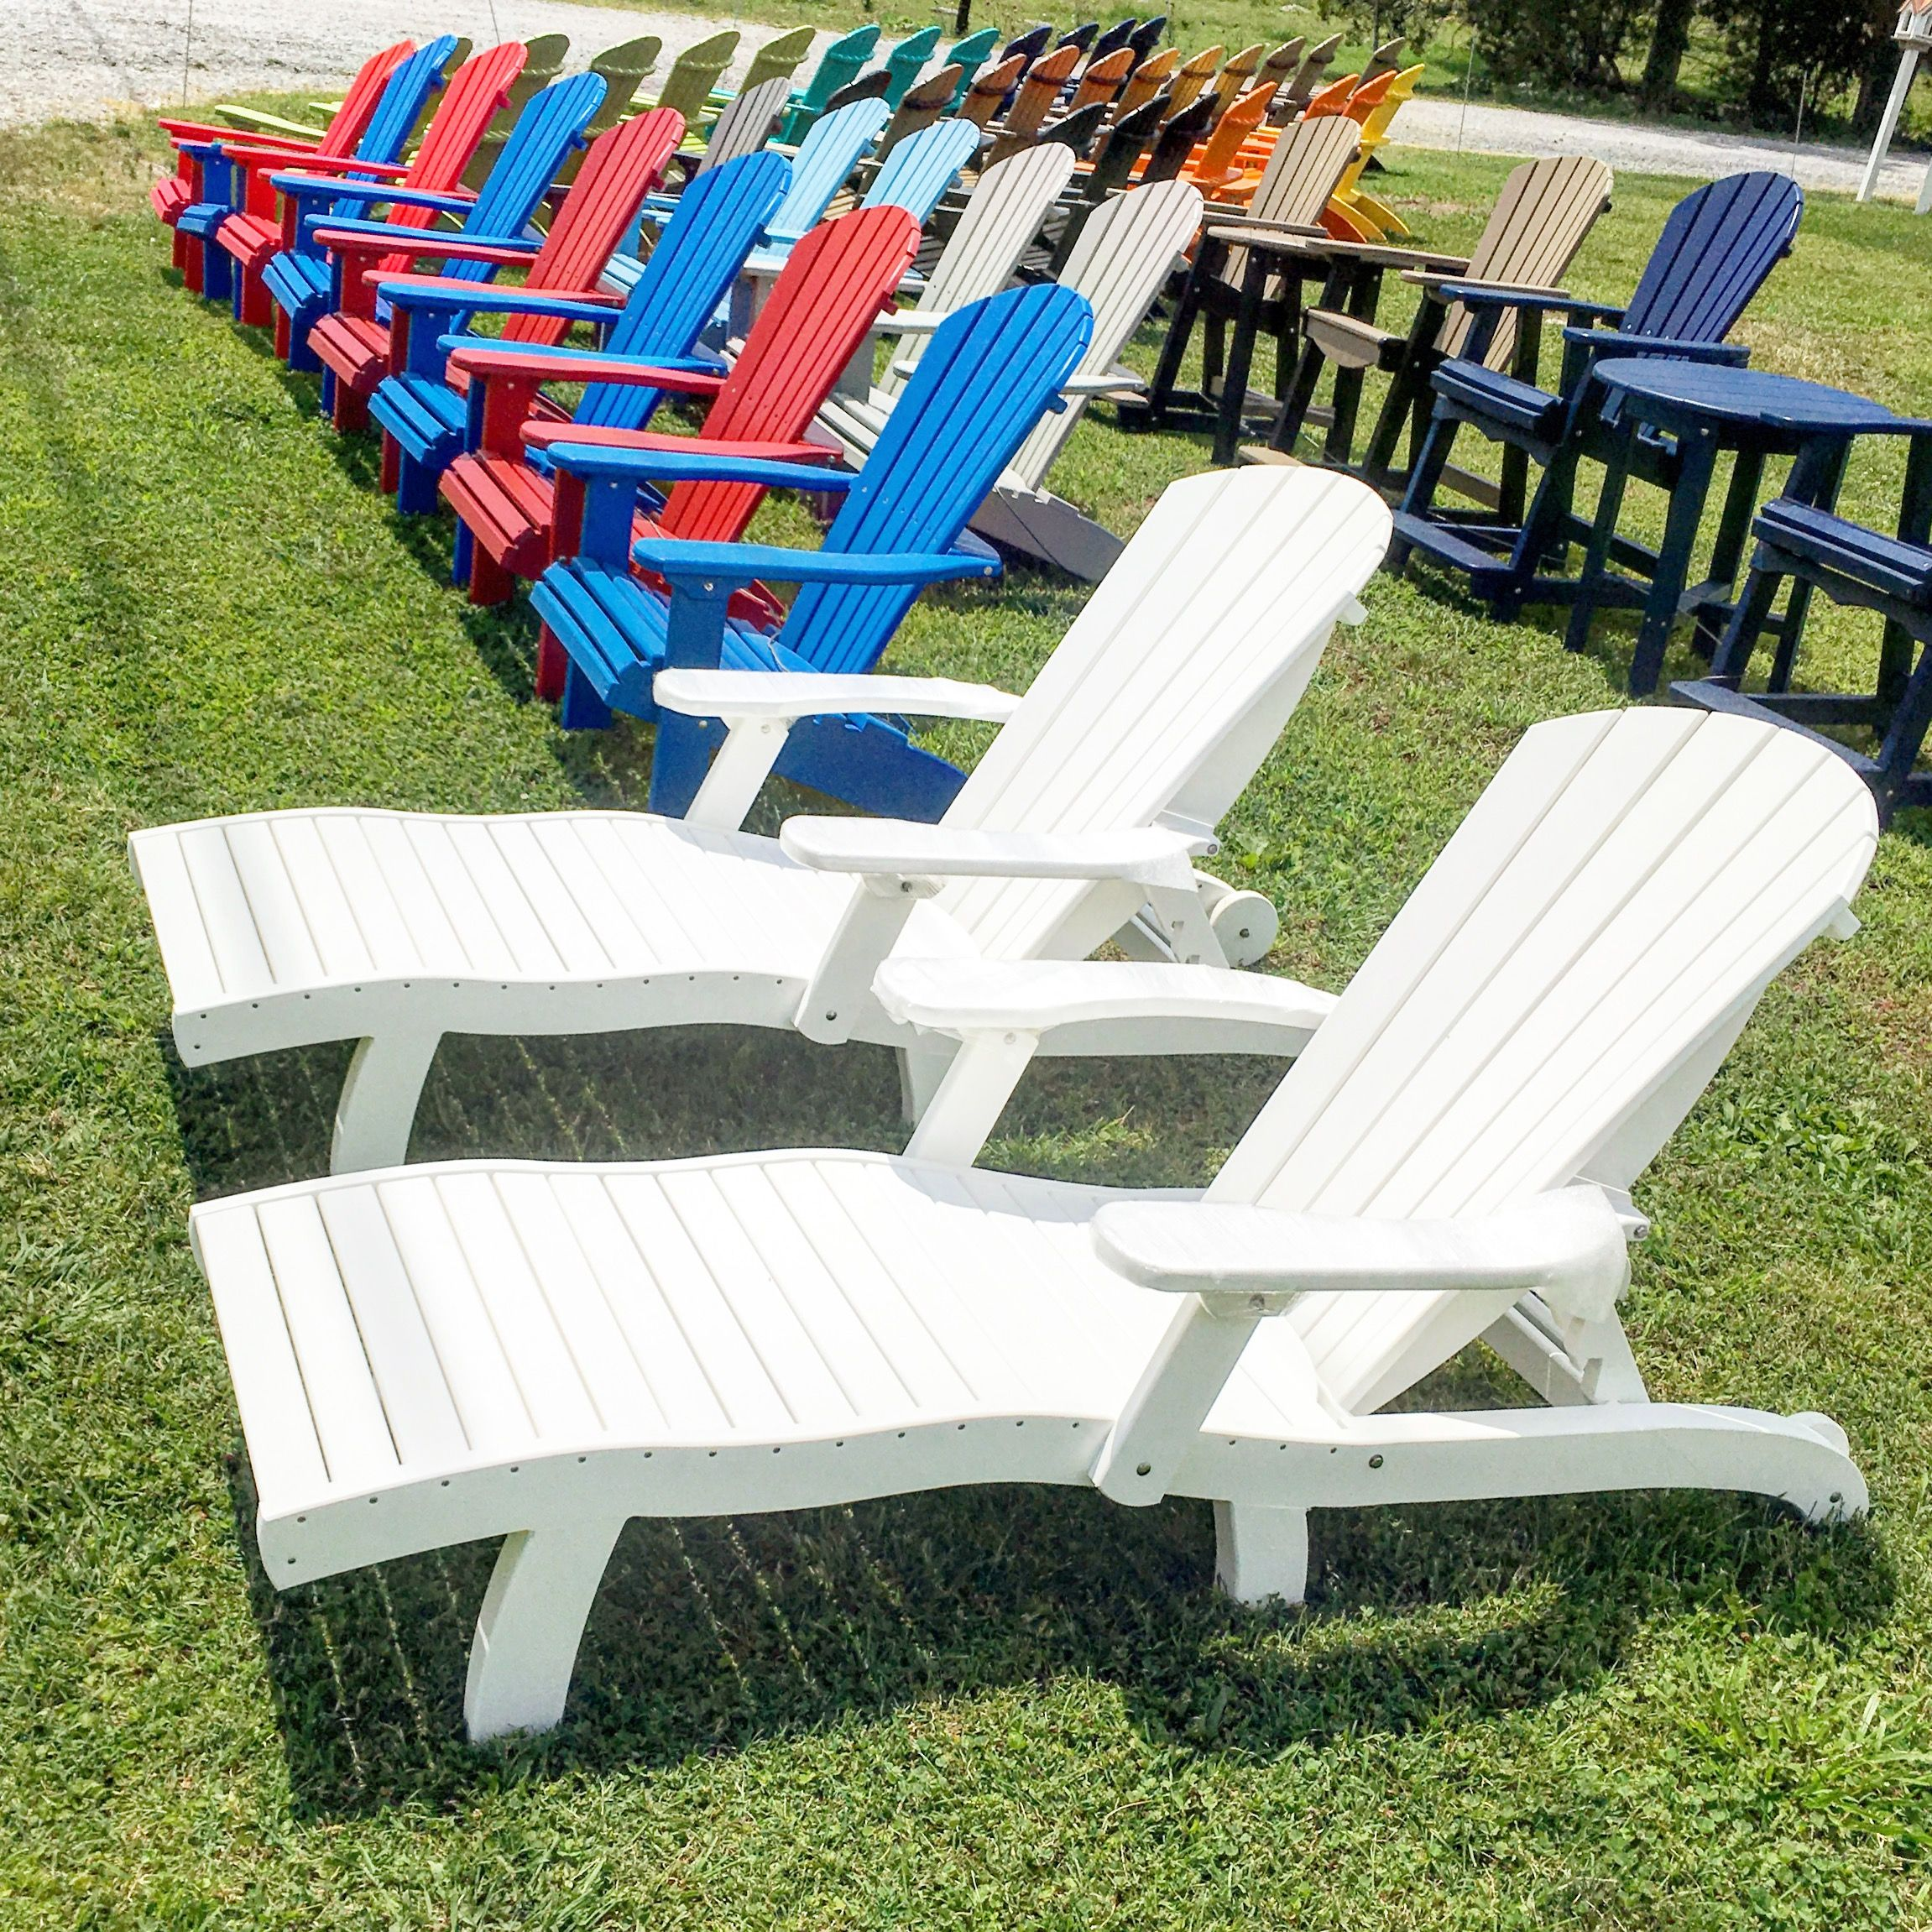 Patio Furniture In Nashville Tn.Smucker Farms Poly Furniture In Nashville Tn Poly Outdoor